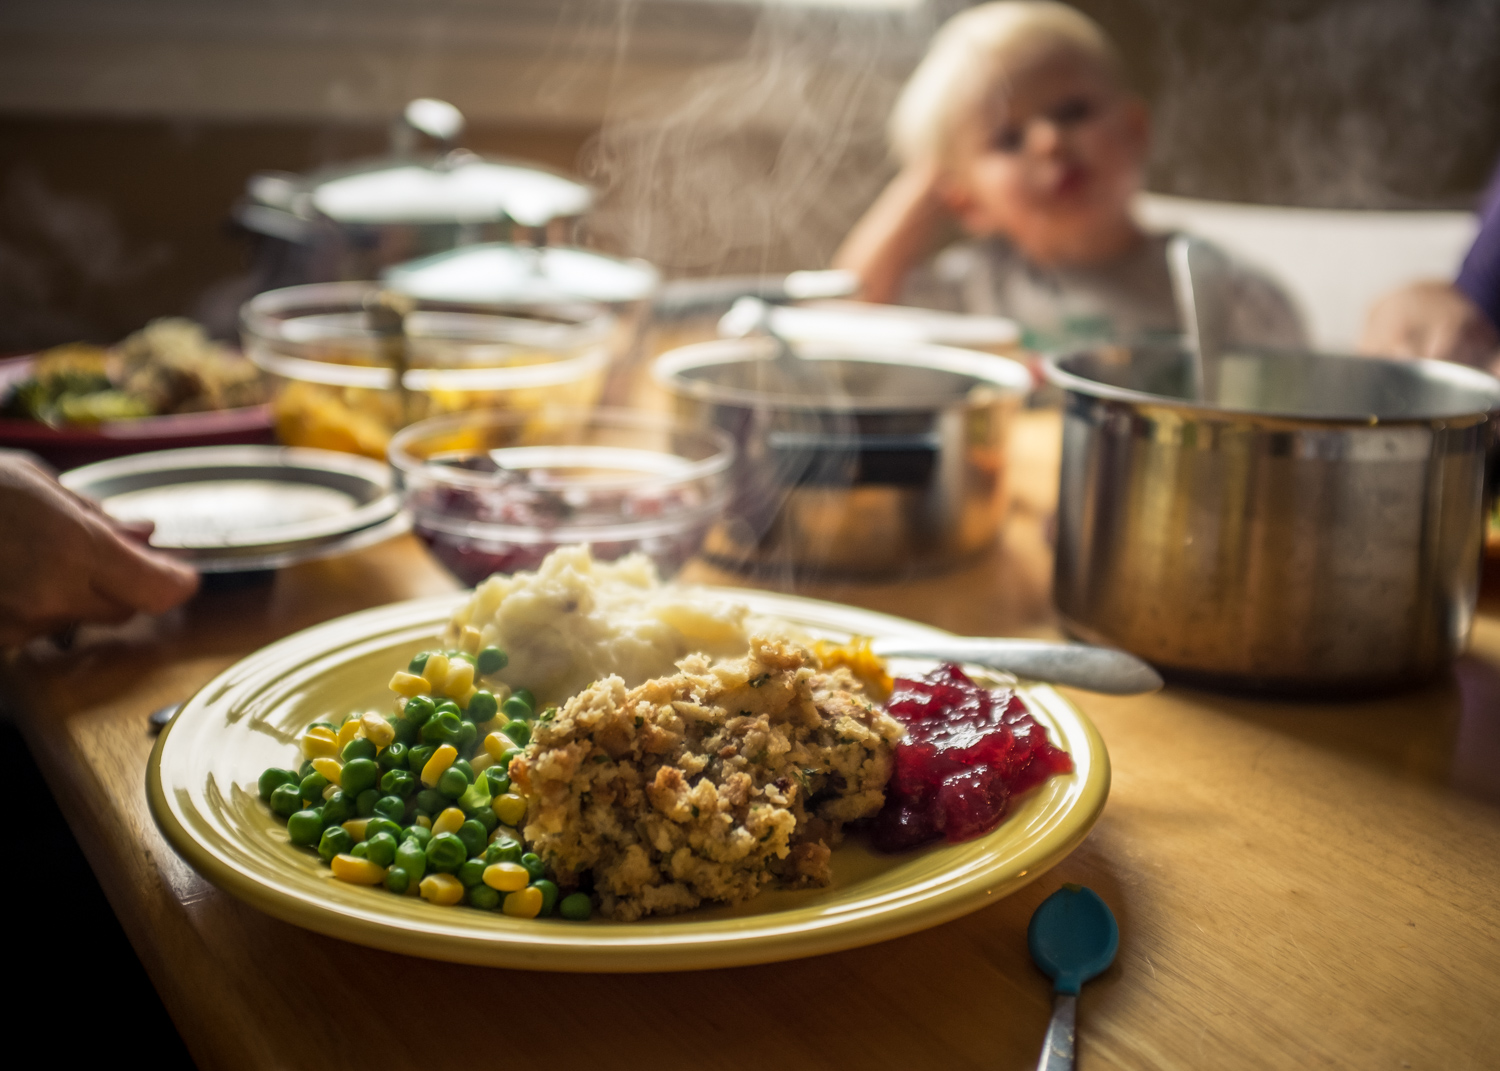 10 - How to Take Great Food Photos this Holiday Season